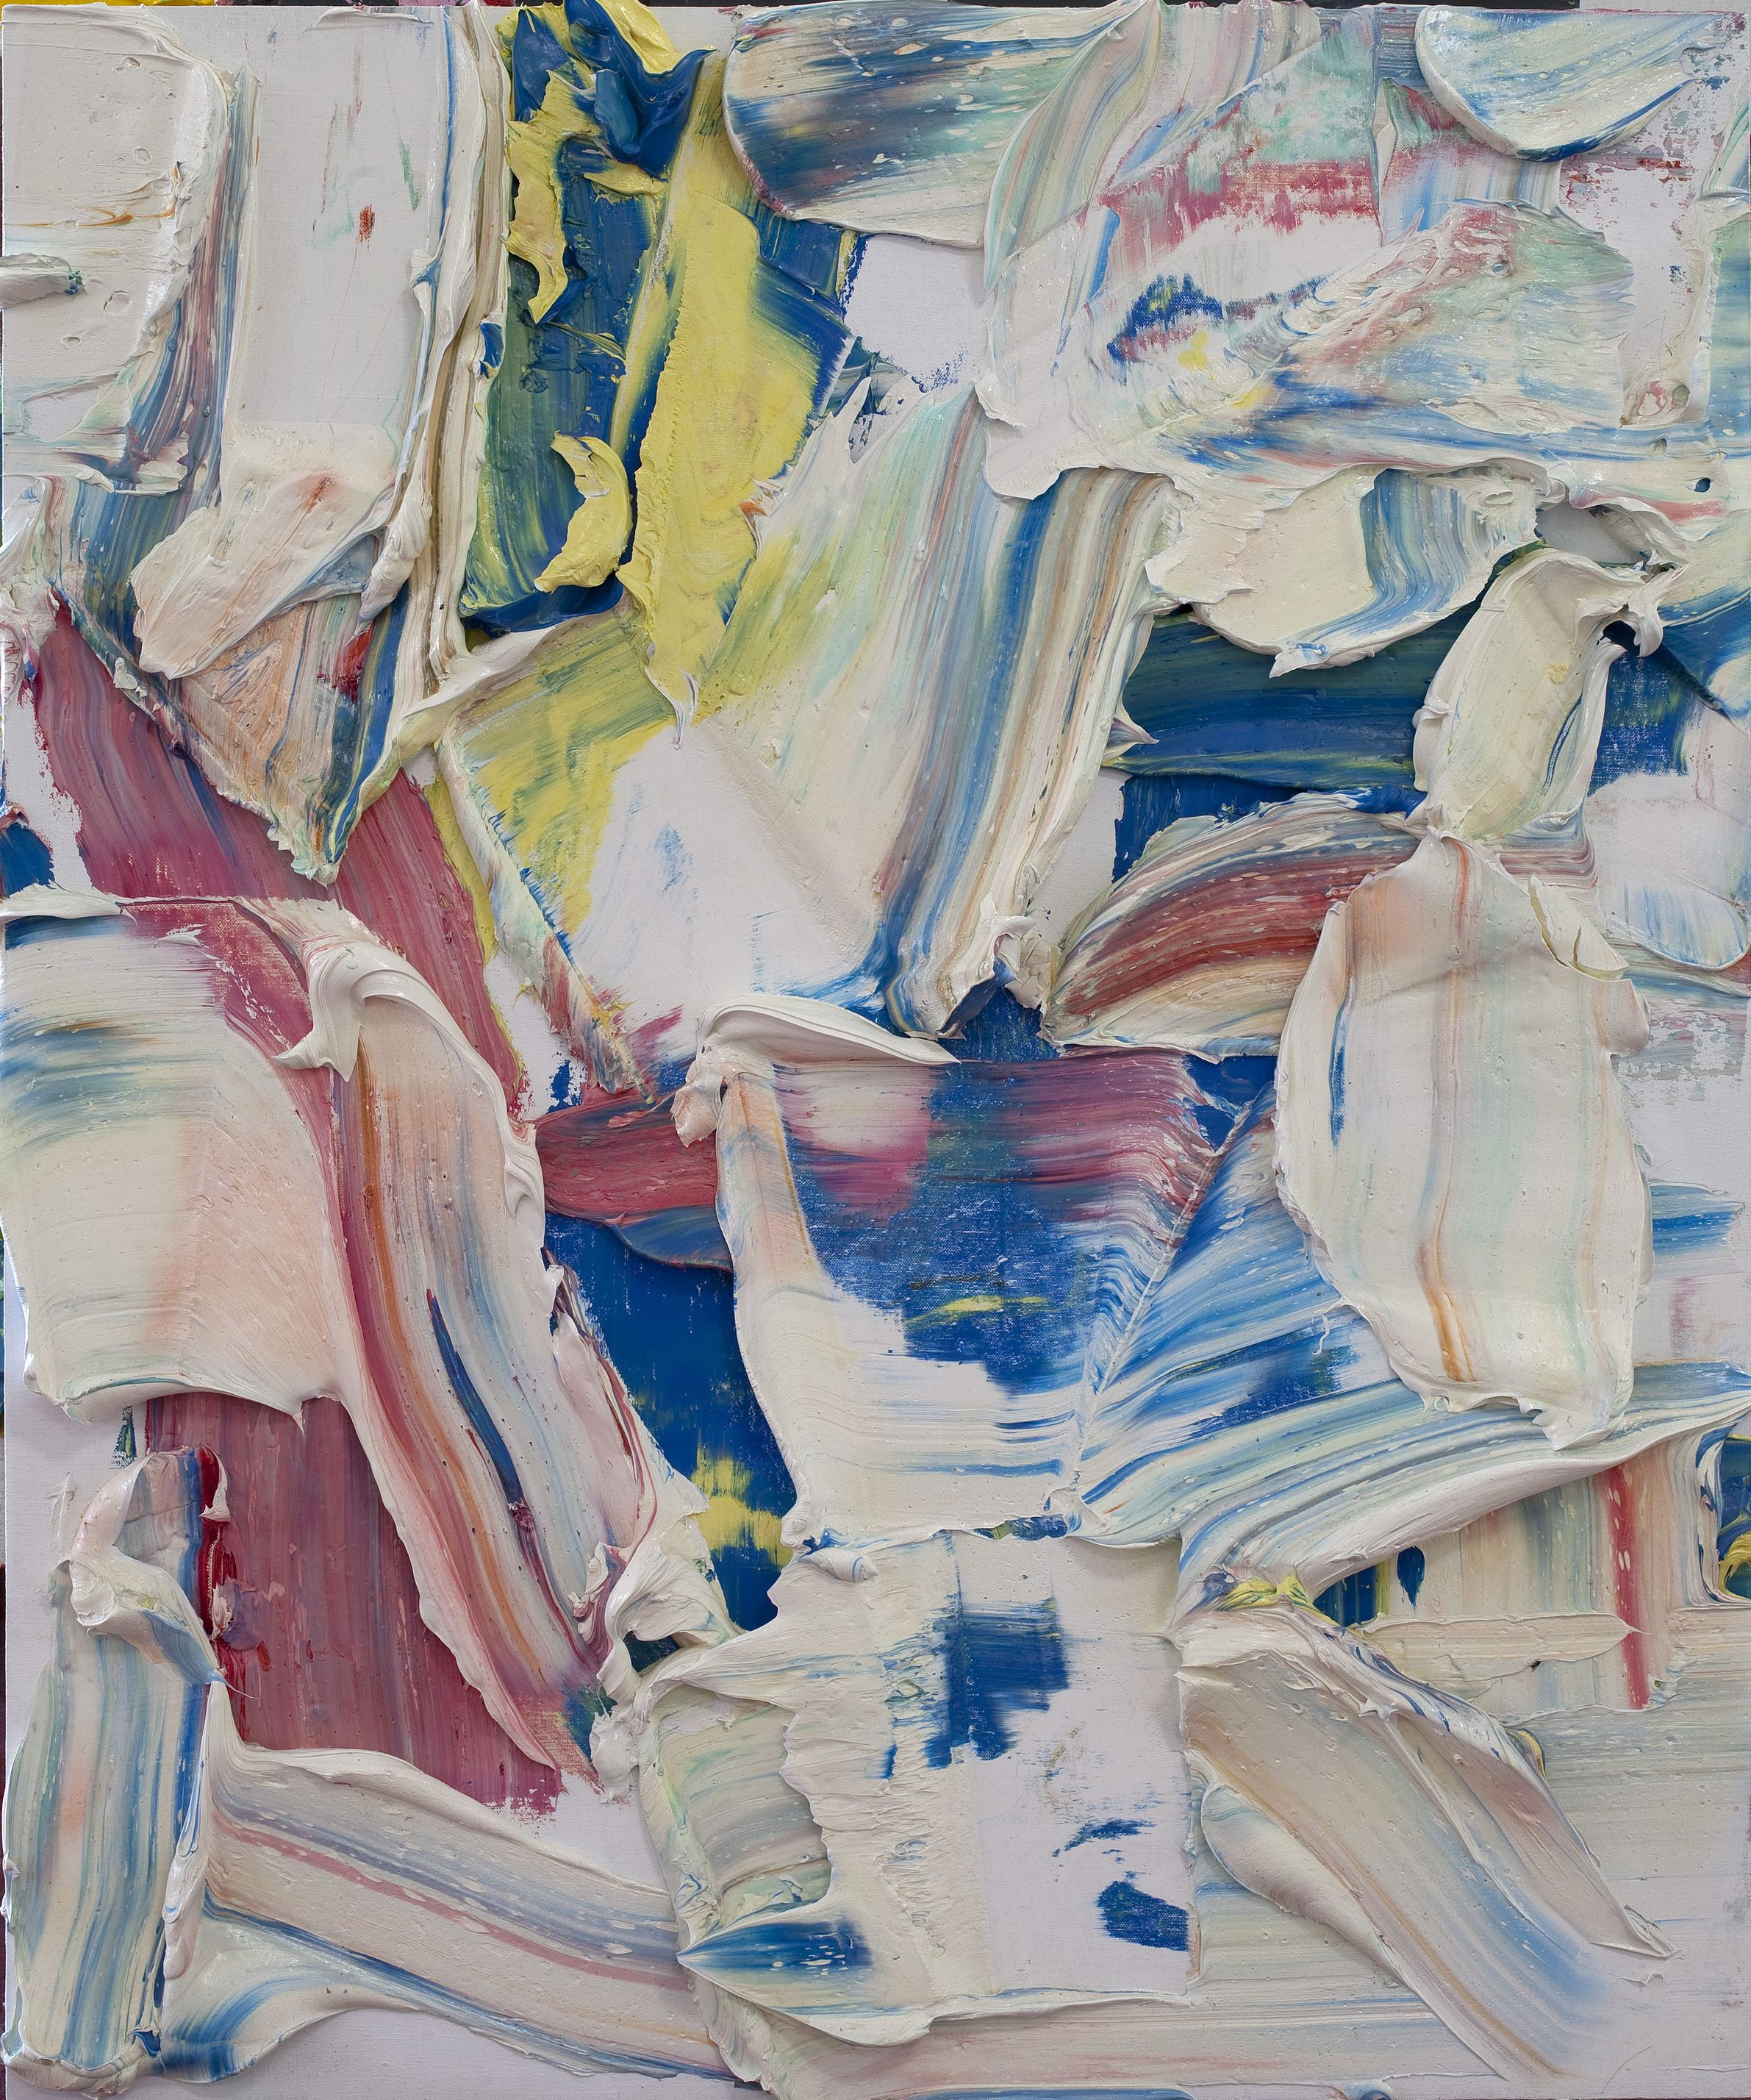 Zhu Jinshi 朱金石, Color to One's Heart's Content 痛快色, 2010, Oil on canvas 布面油畫, 120 x 100 cm (47 1:5 x 39 2:5 in.)  Featured at Pearl Lam for Art Hong Kong 2012